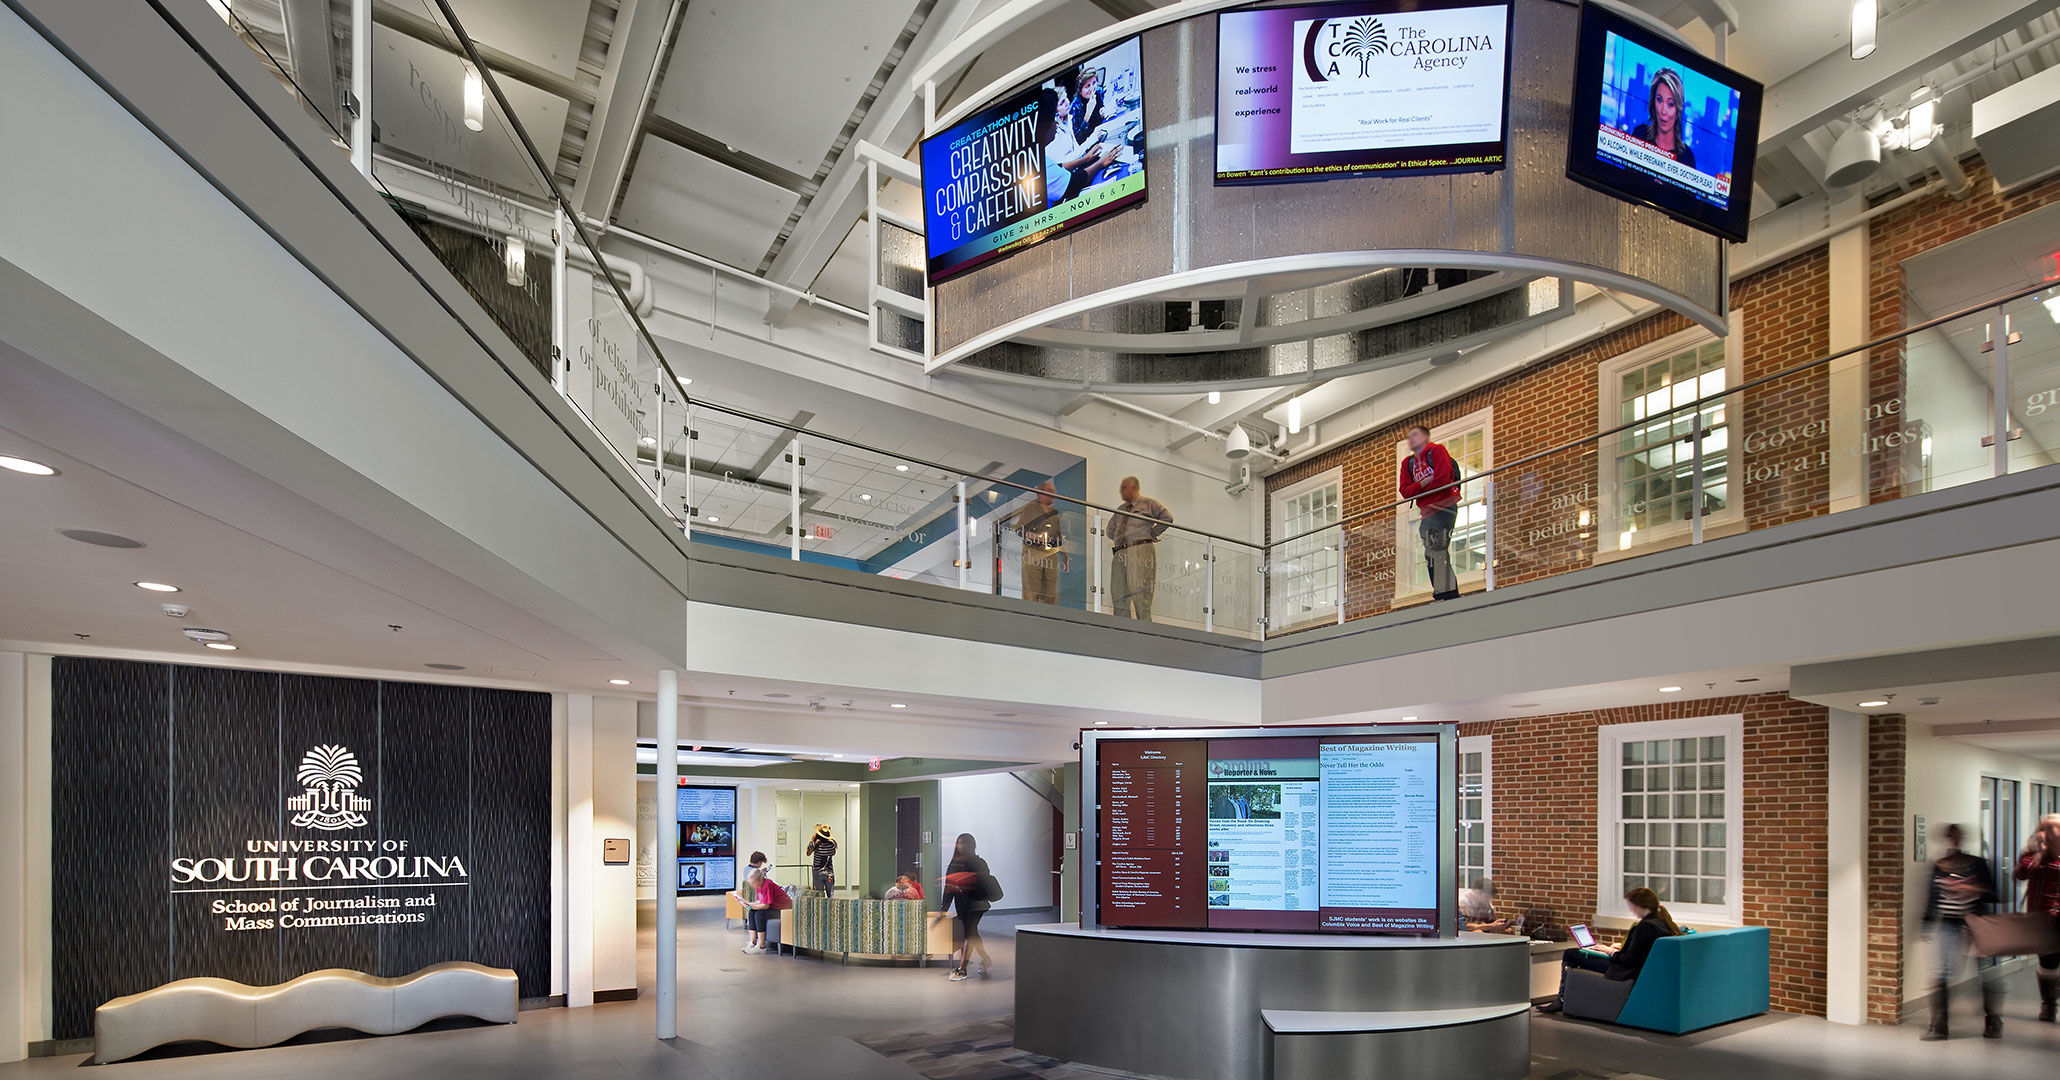 University of South Carolina worked with Boudreaux architects to design and upgrade the interior and exterior of the School of Journalism.